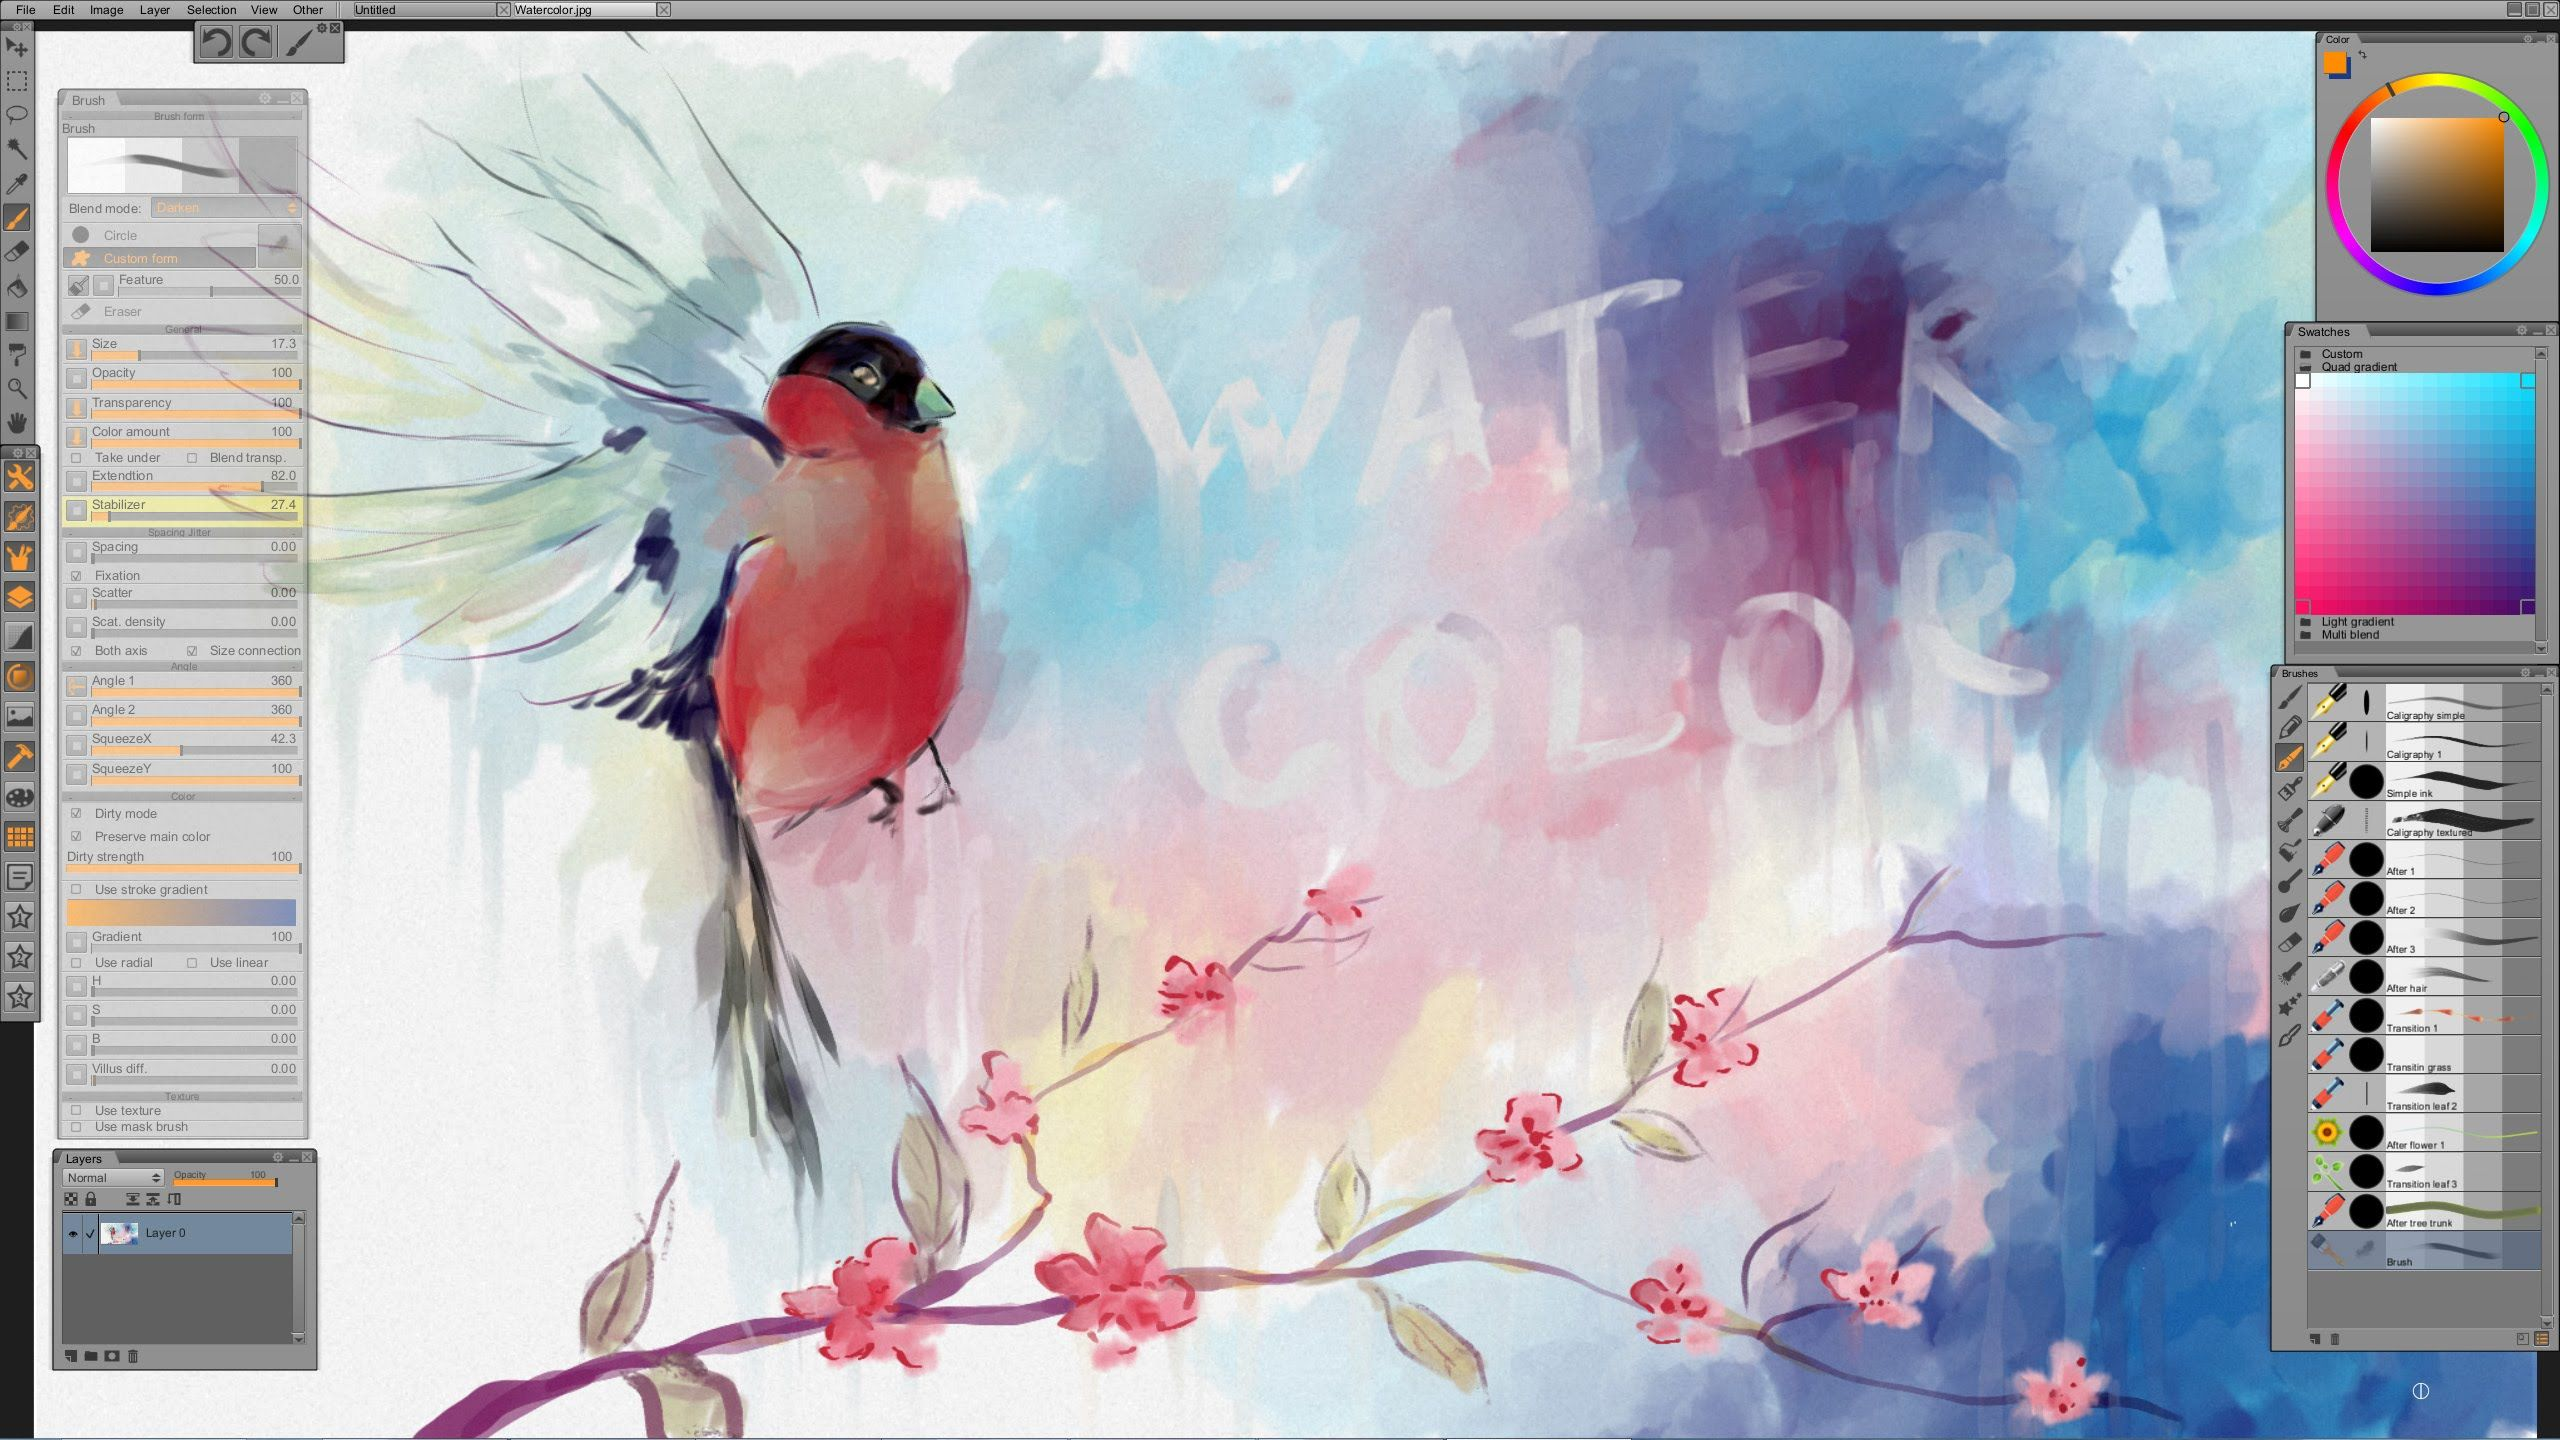 Watercolor Imitation In Paintstorm Studio Www Paintstormstudio